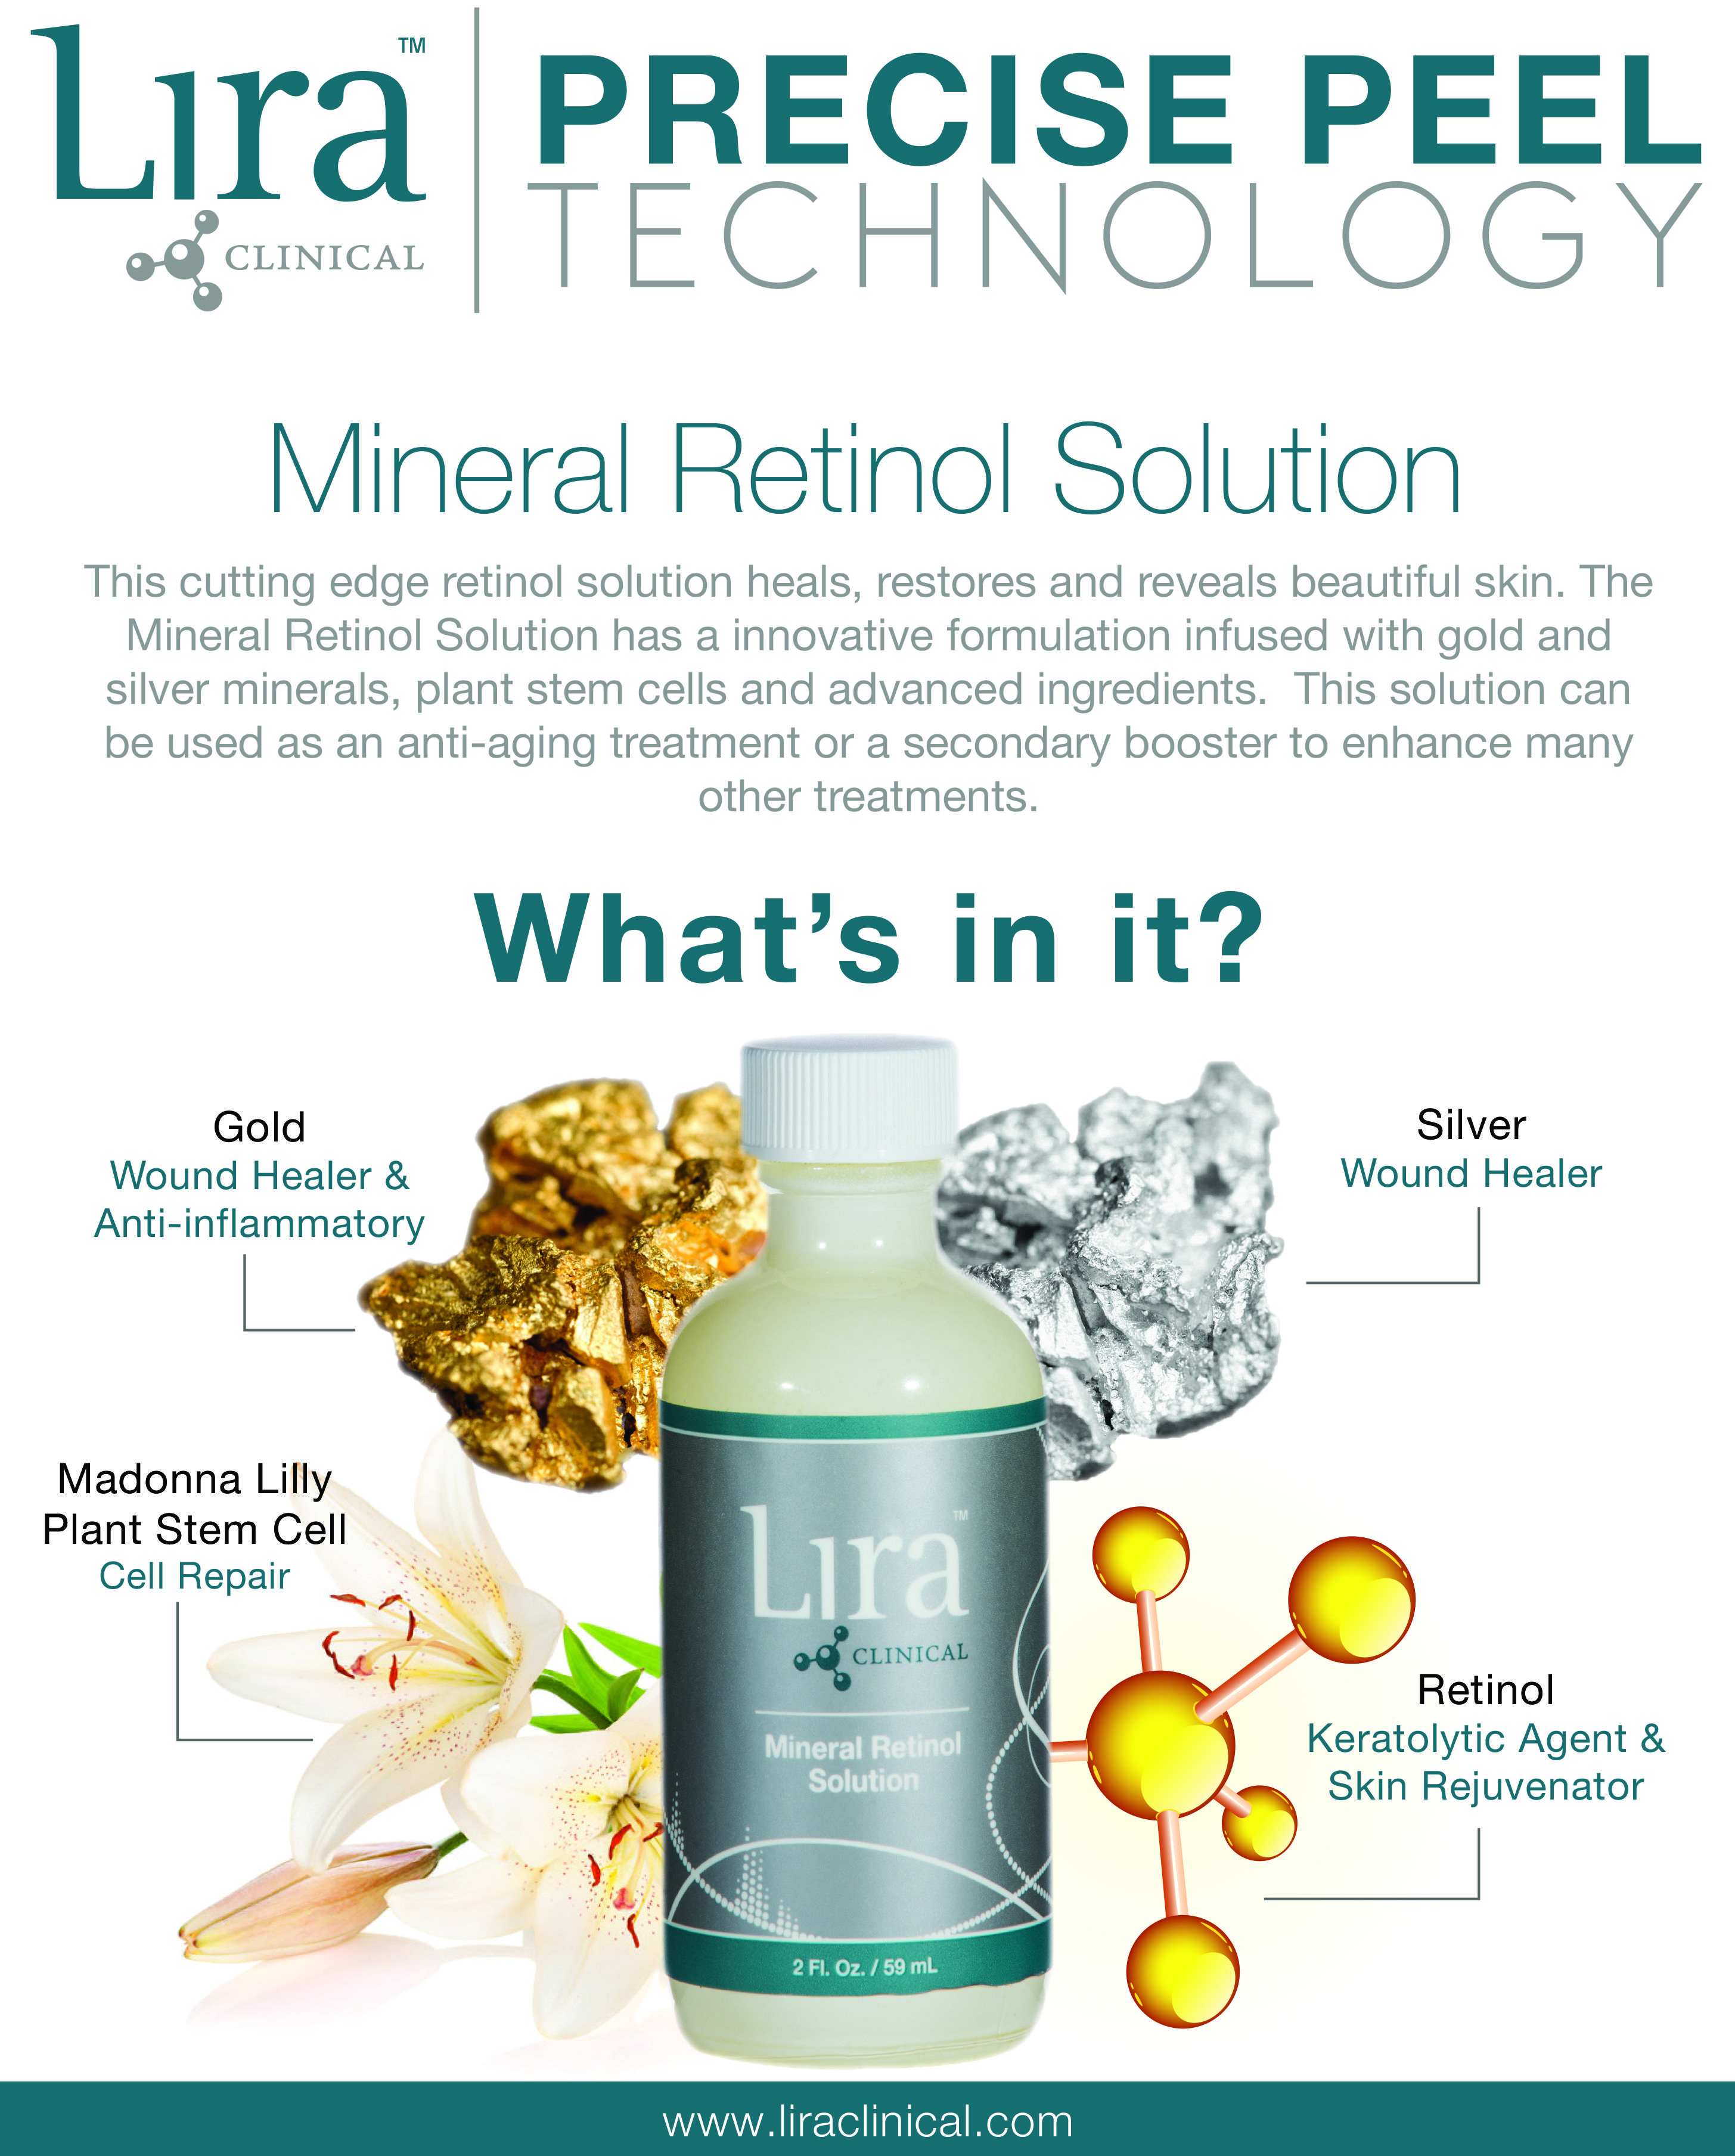 Check Out Our Mineral Retinol Solution This Peel And Solution Is Used To Heal Restore And Reve Skin Care Treatments Excellent Skin Care Anti Aging Treatments